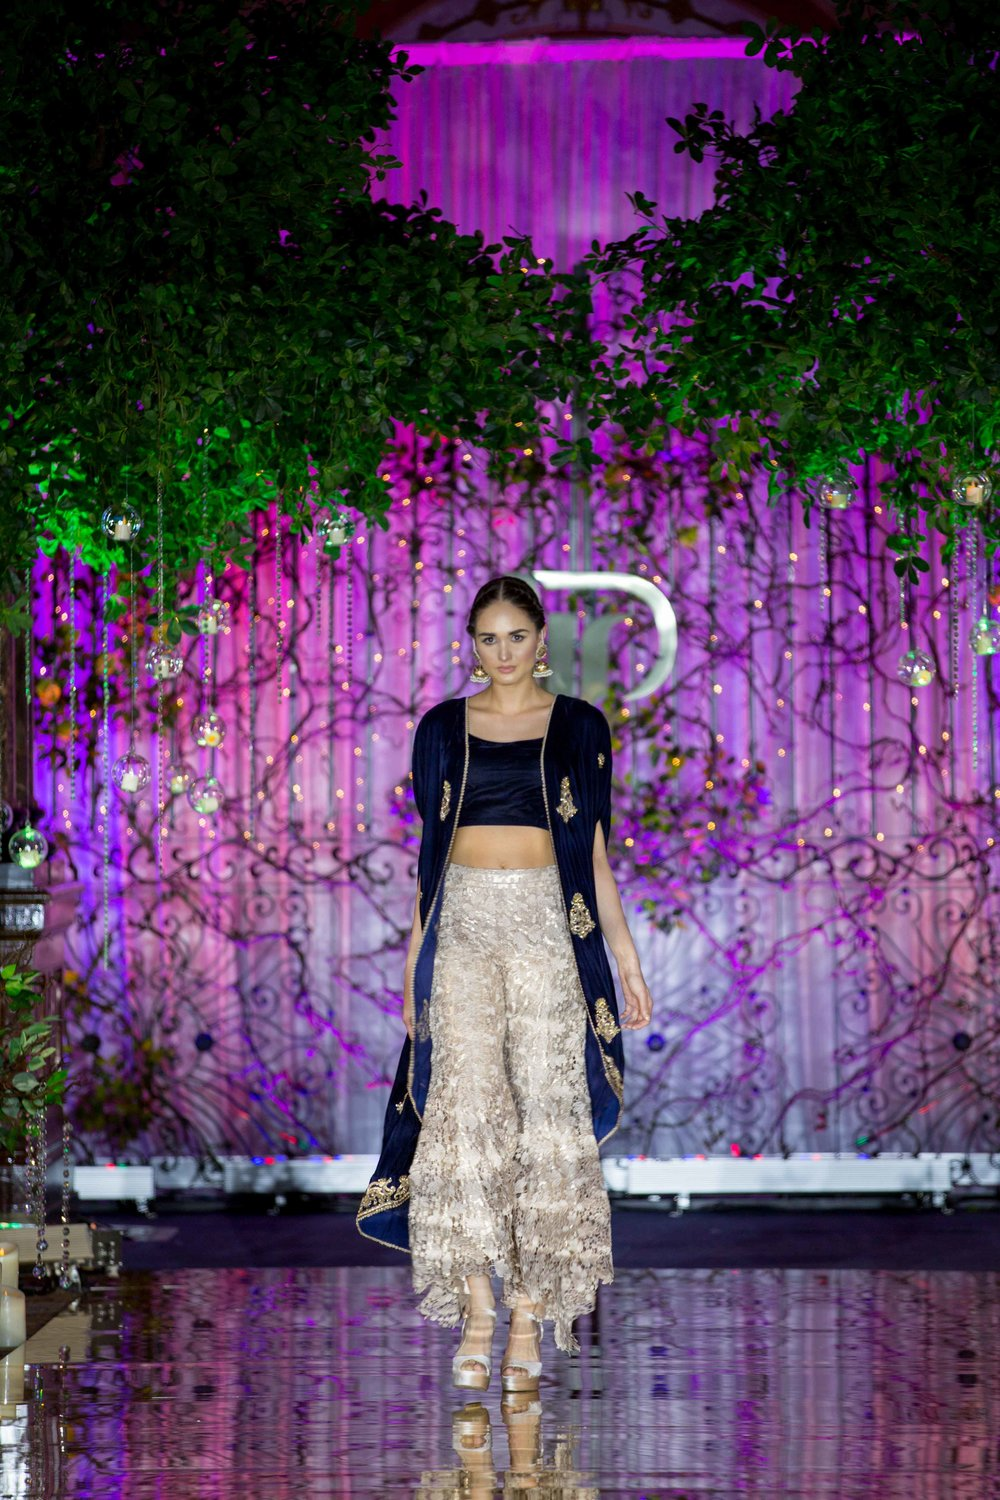 IPLF-IPL-Indian-Pakistani-London-Fashion-London-Week-catwalk-photographer-natalia-smith-photography-komal-nasir-22.jpg